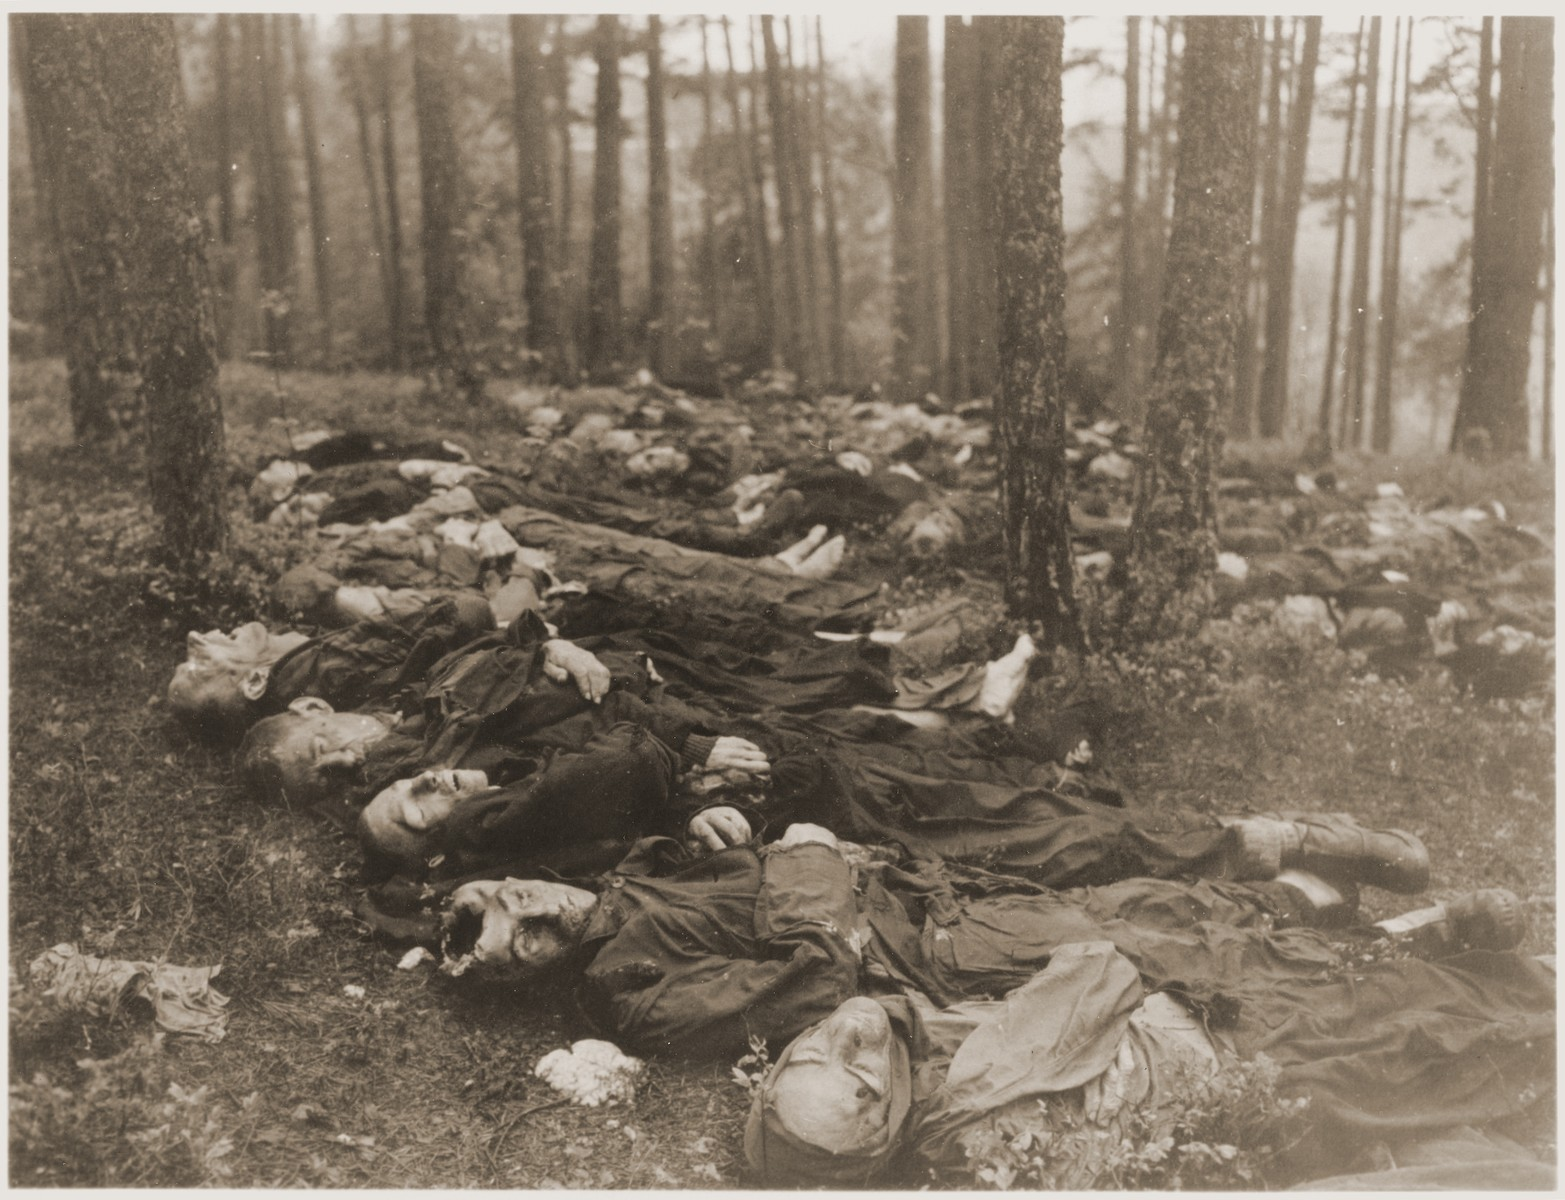 The bodies of Polish, Russian, and Hungarian Jews in the woods near Neunburg vorm Wald.  The victims were prisoners from Flossenbuerg who were shot near Neunburg while on a death march.